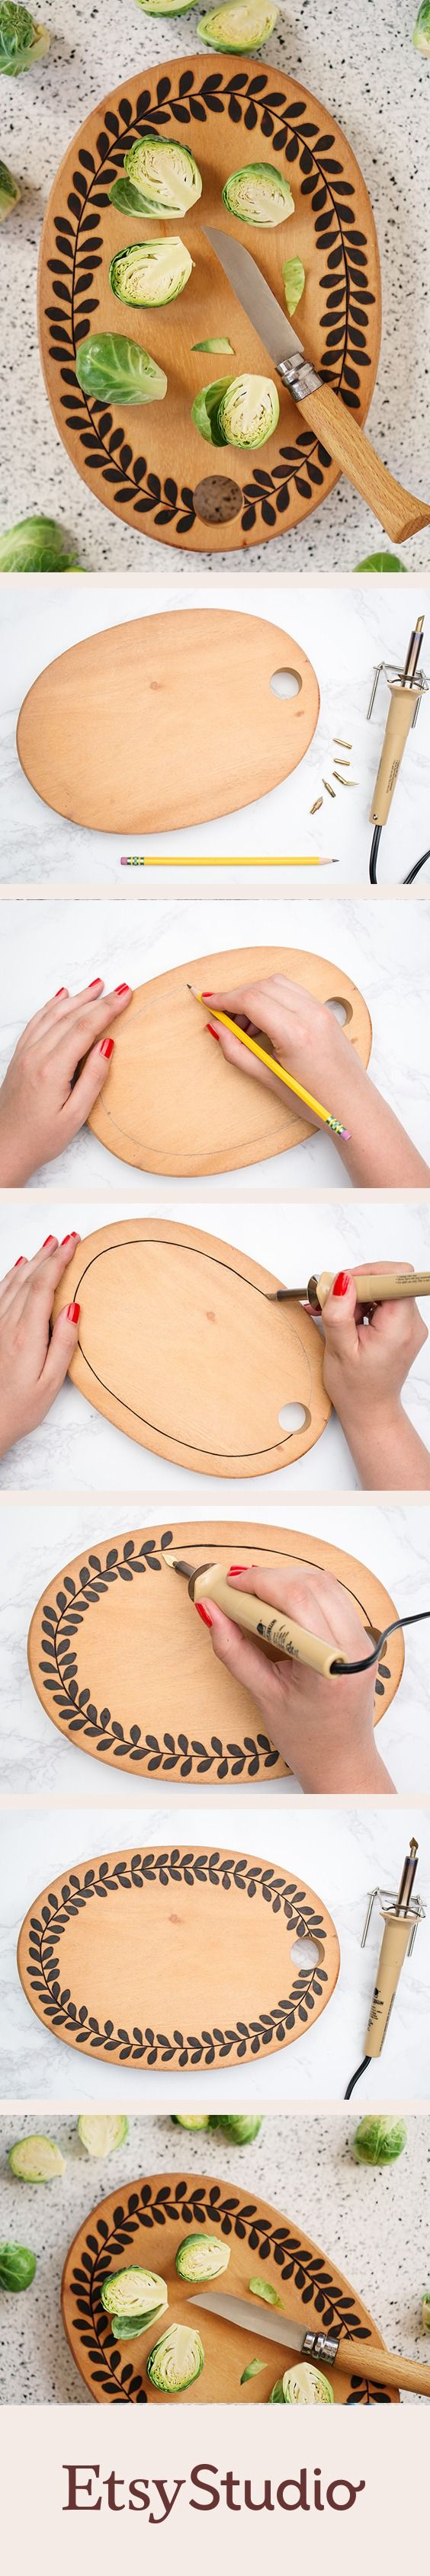 Creating a custom cutting board is easy with a wood burning tool and a little inspiration.